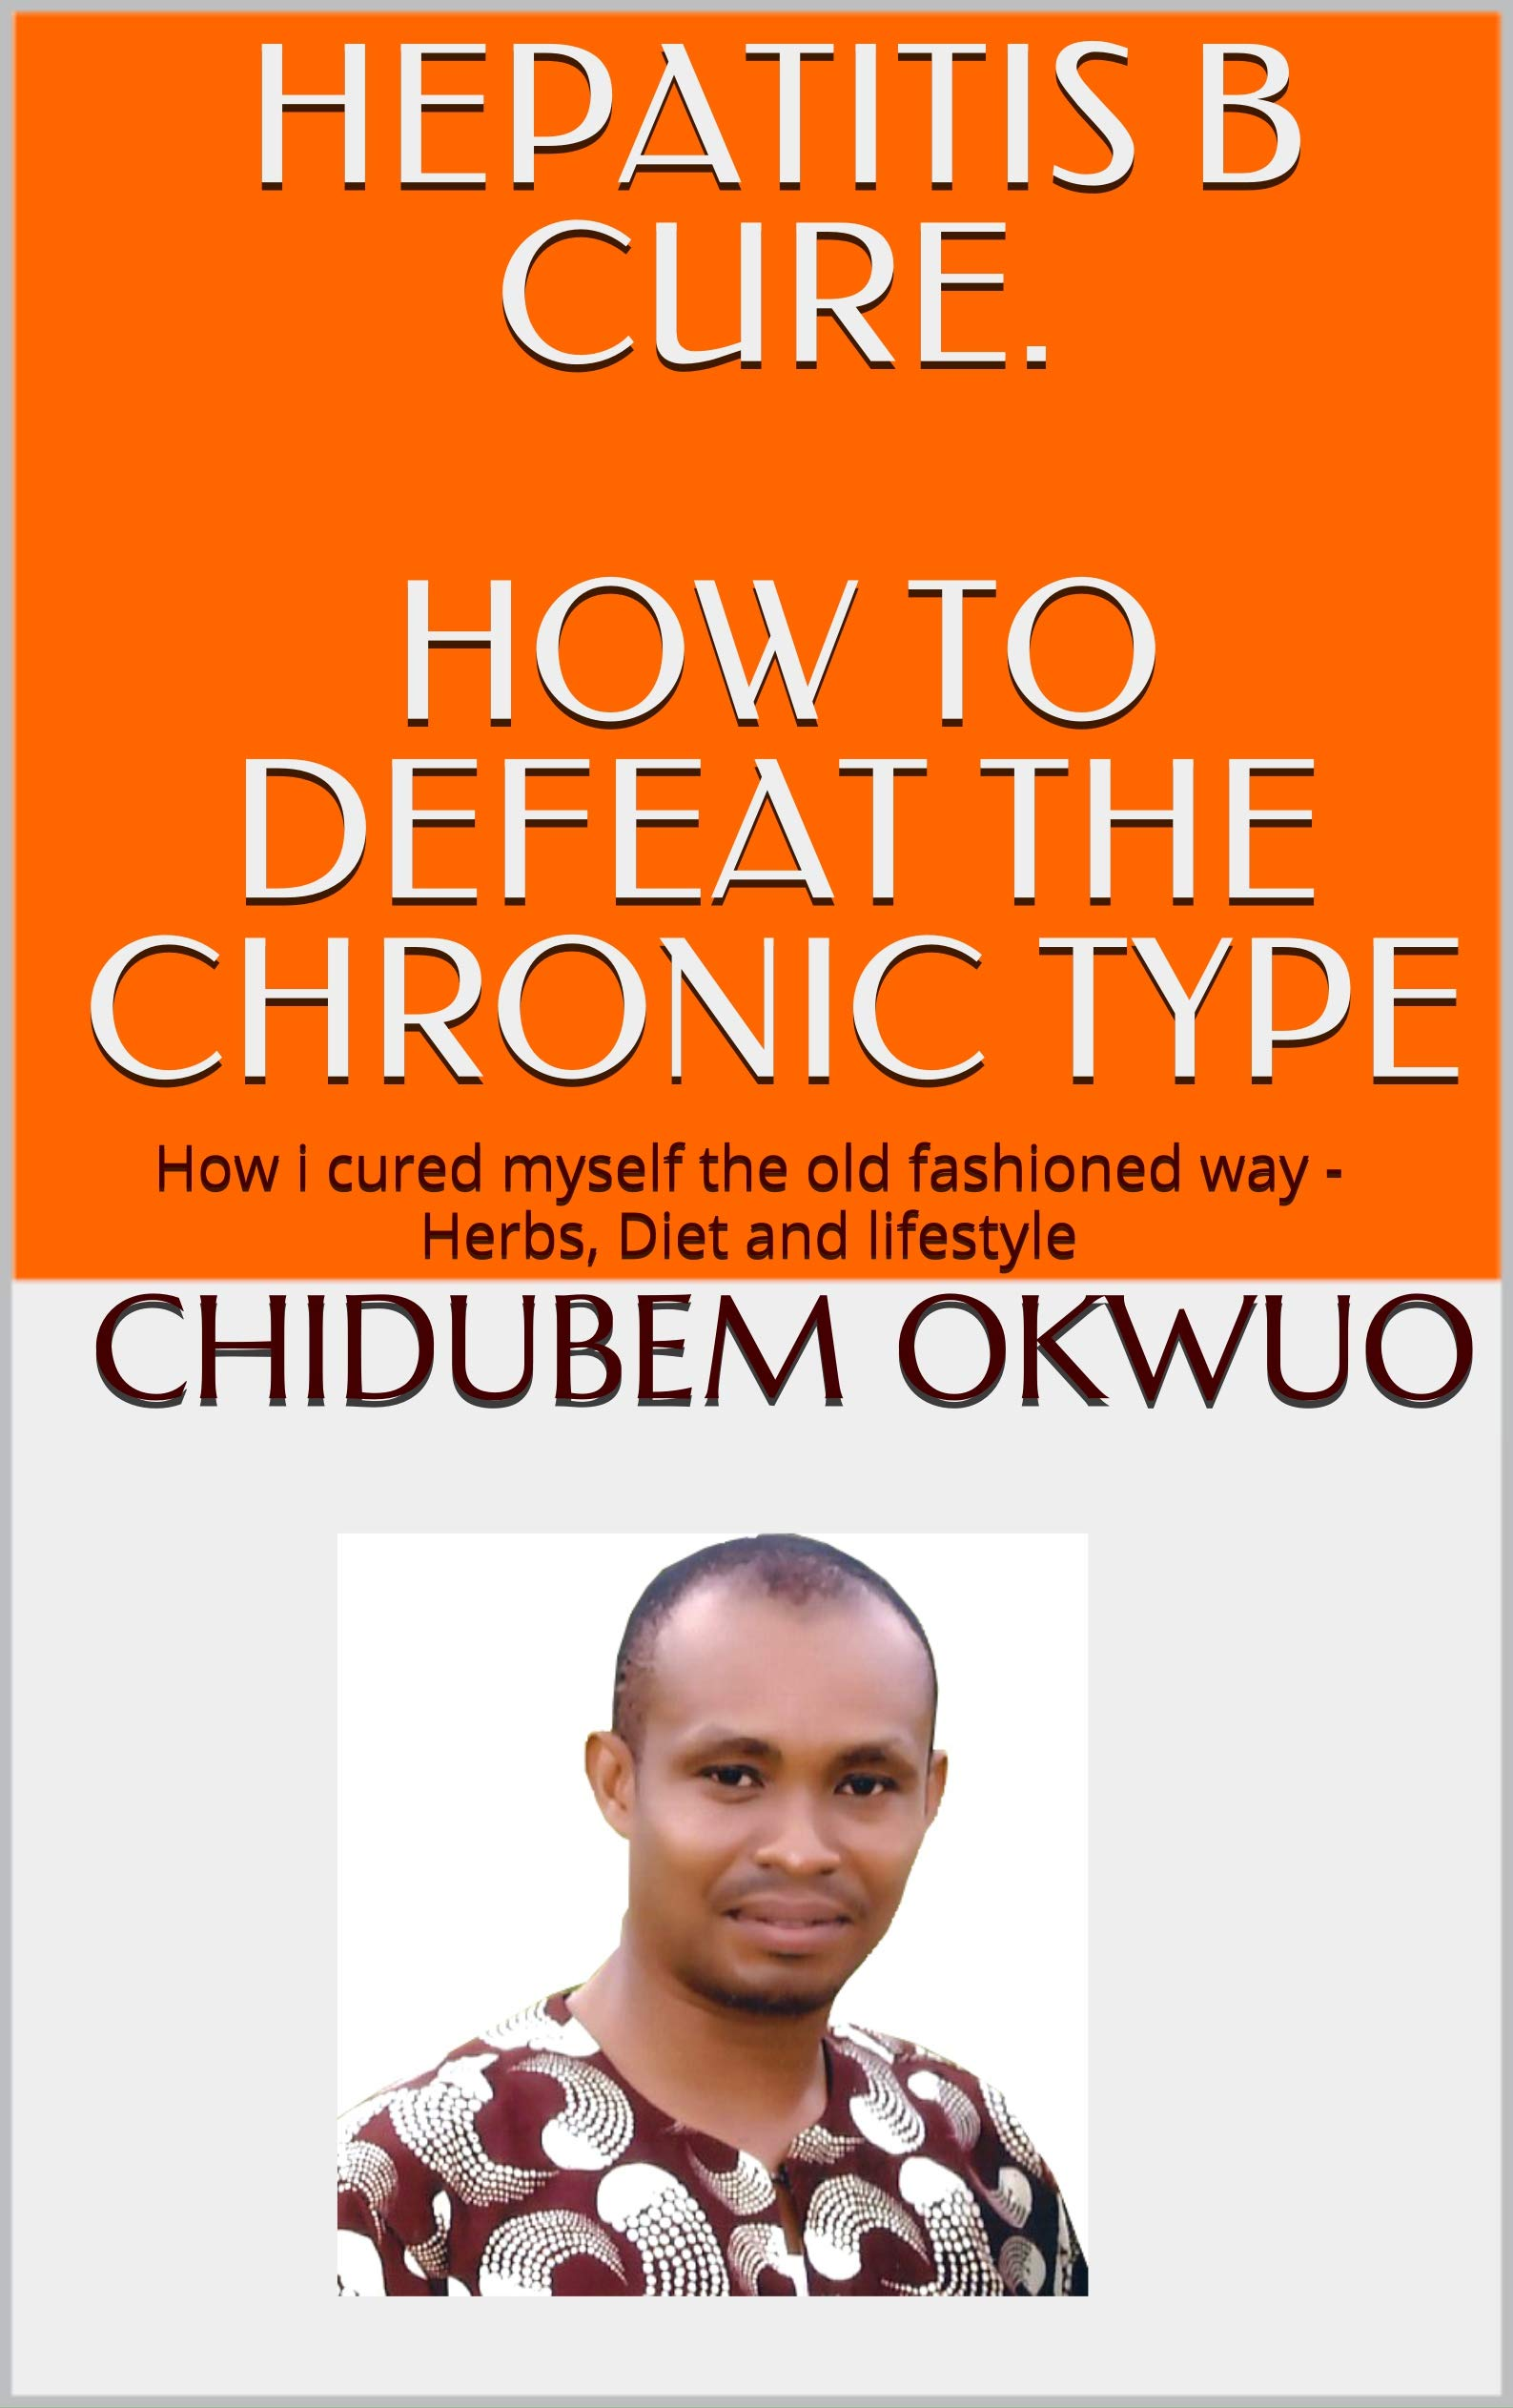 HEPATITIS B CURE. HOW TO DEFEAT THE CHRONIC